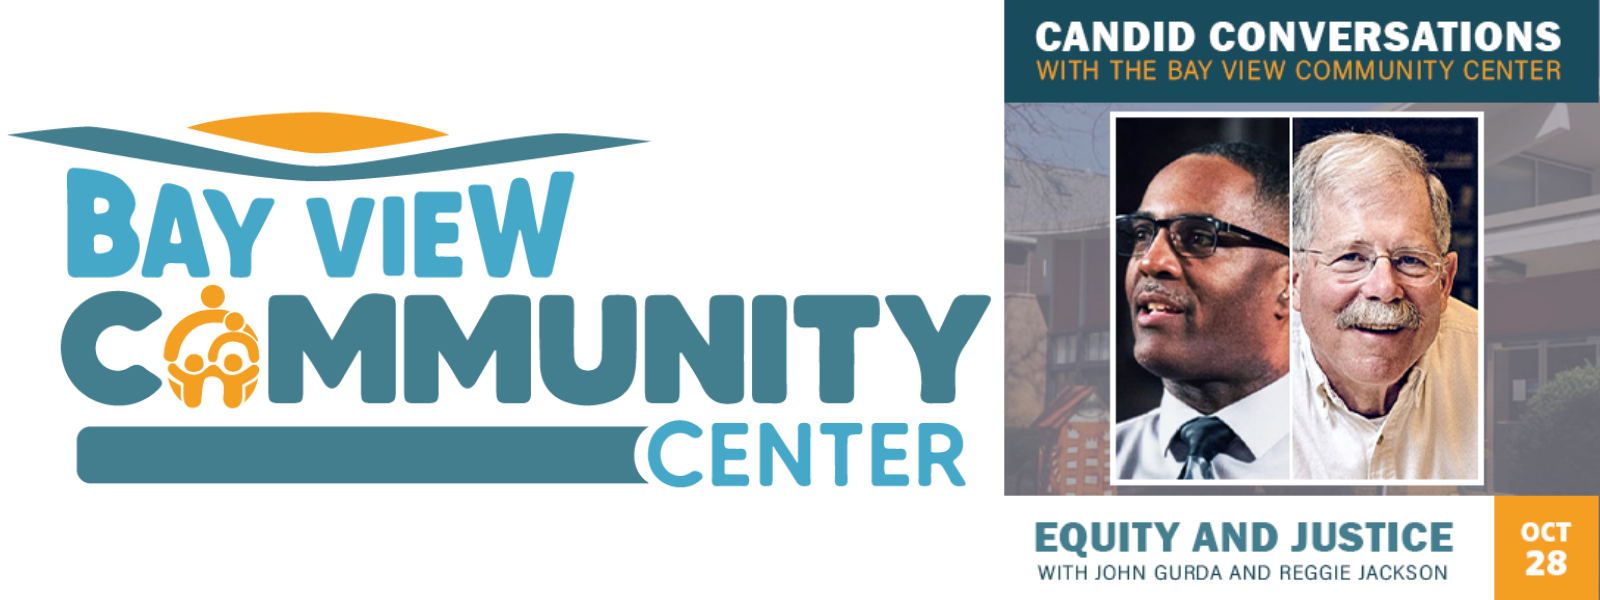 Support Candid Conversations with the Bay View Community Center image